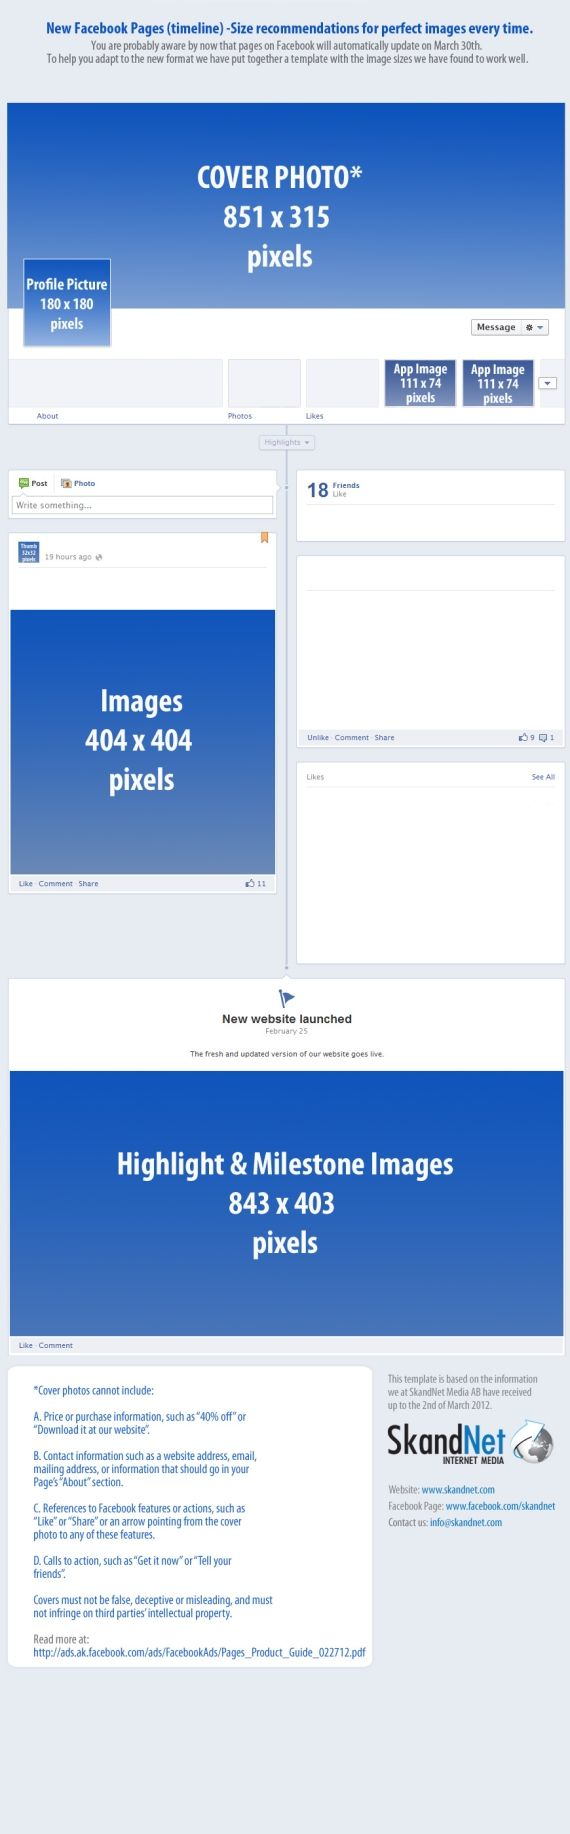 Facebook image sizes (WxH)    Cover photo: 851 x 315 px;  Profile picture: 180 x 180 px;  App image: 111 x 74 px;  Thumbnail: 32 x 32 px;  Images within wall posts: 404 x 404 px;   Highlighted and milestone images: 843 x 403 px;  Not included: Event image: 200 x 296 px